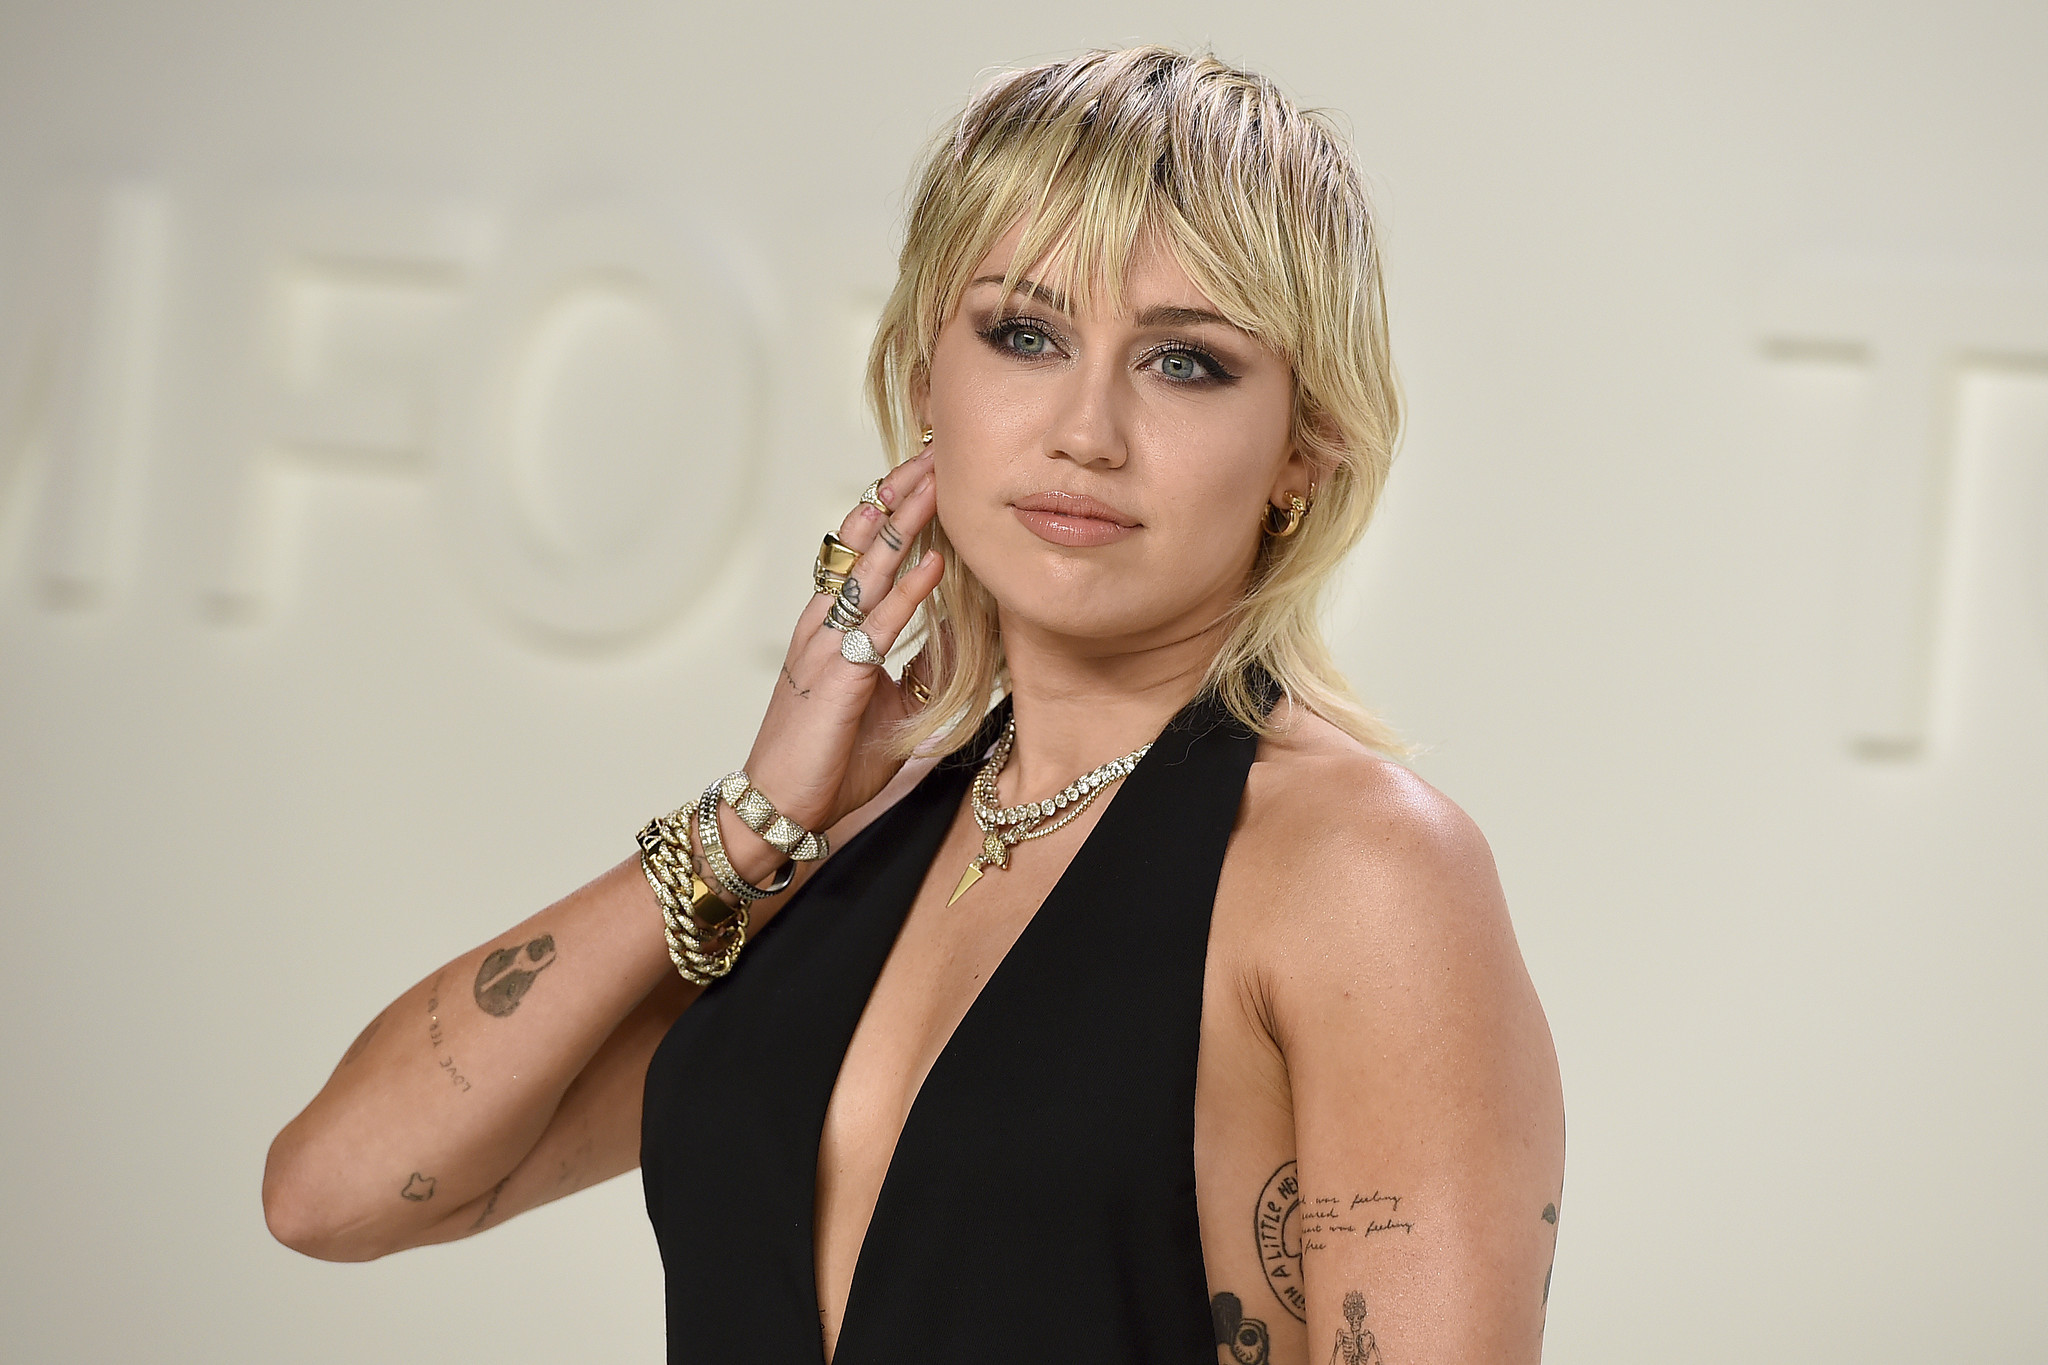 Miley Cyrus reconsidering religion after being driven away from church because of gay conversion therapy